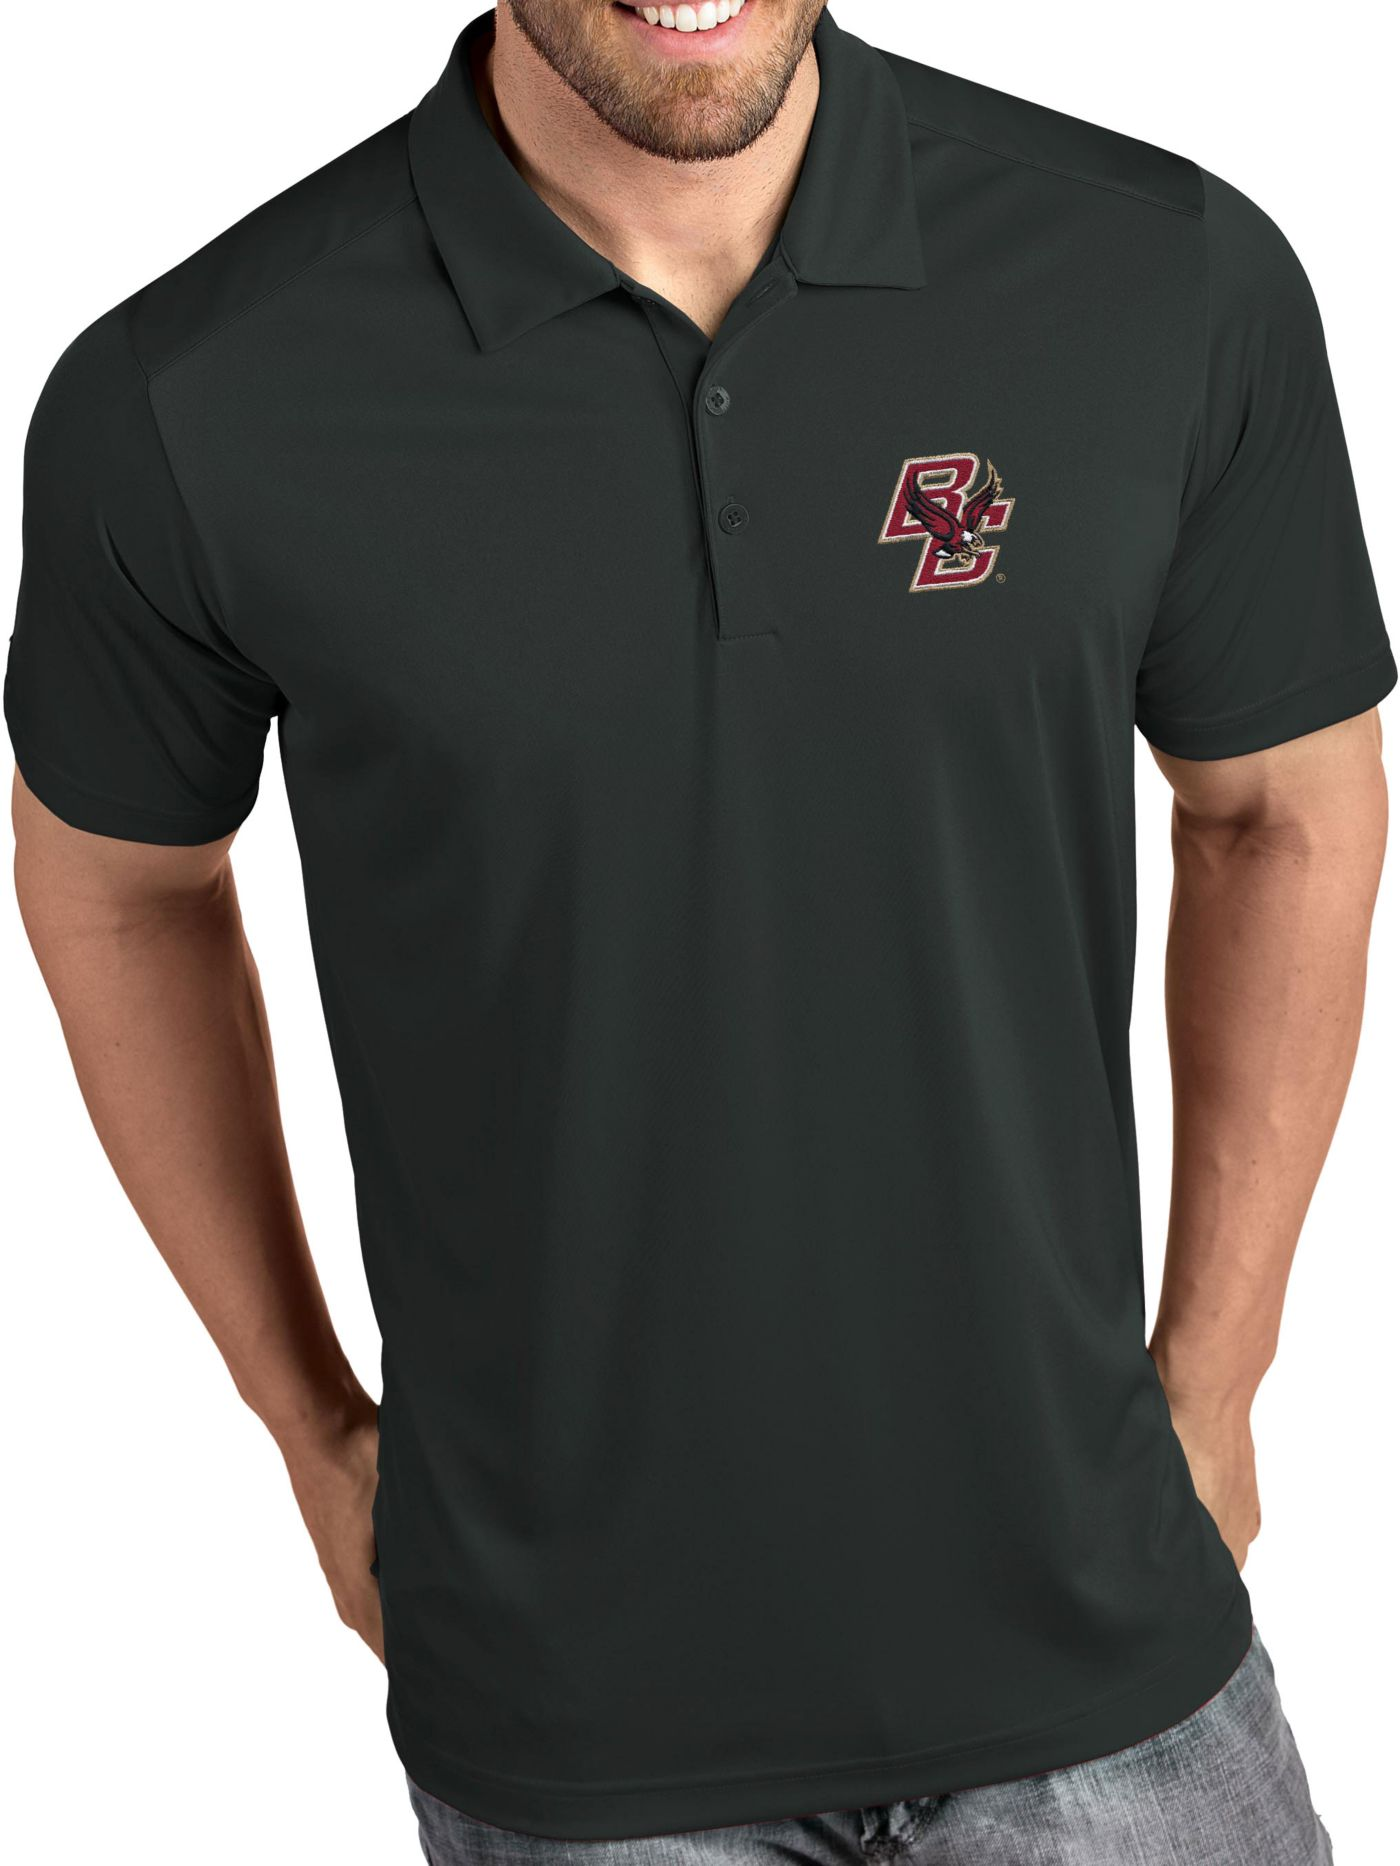 Antigua Men's Boston College Eagles Grey Tribute Performance Polo